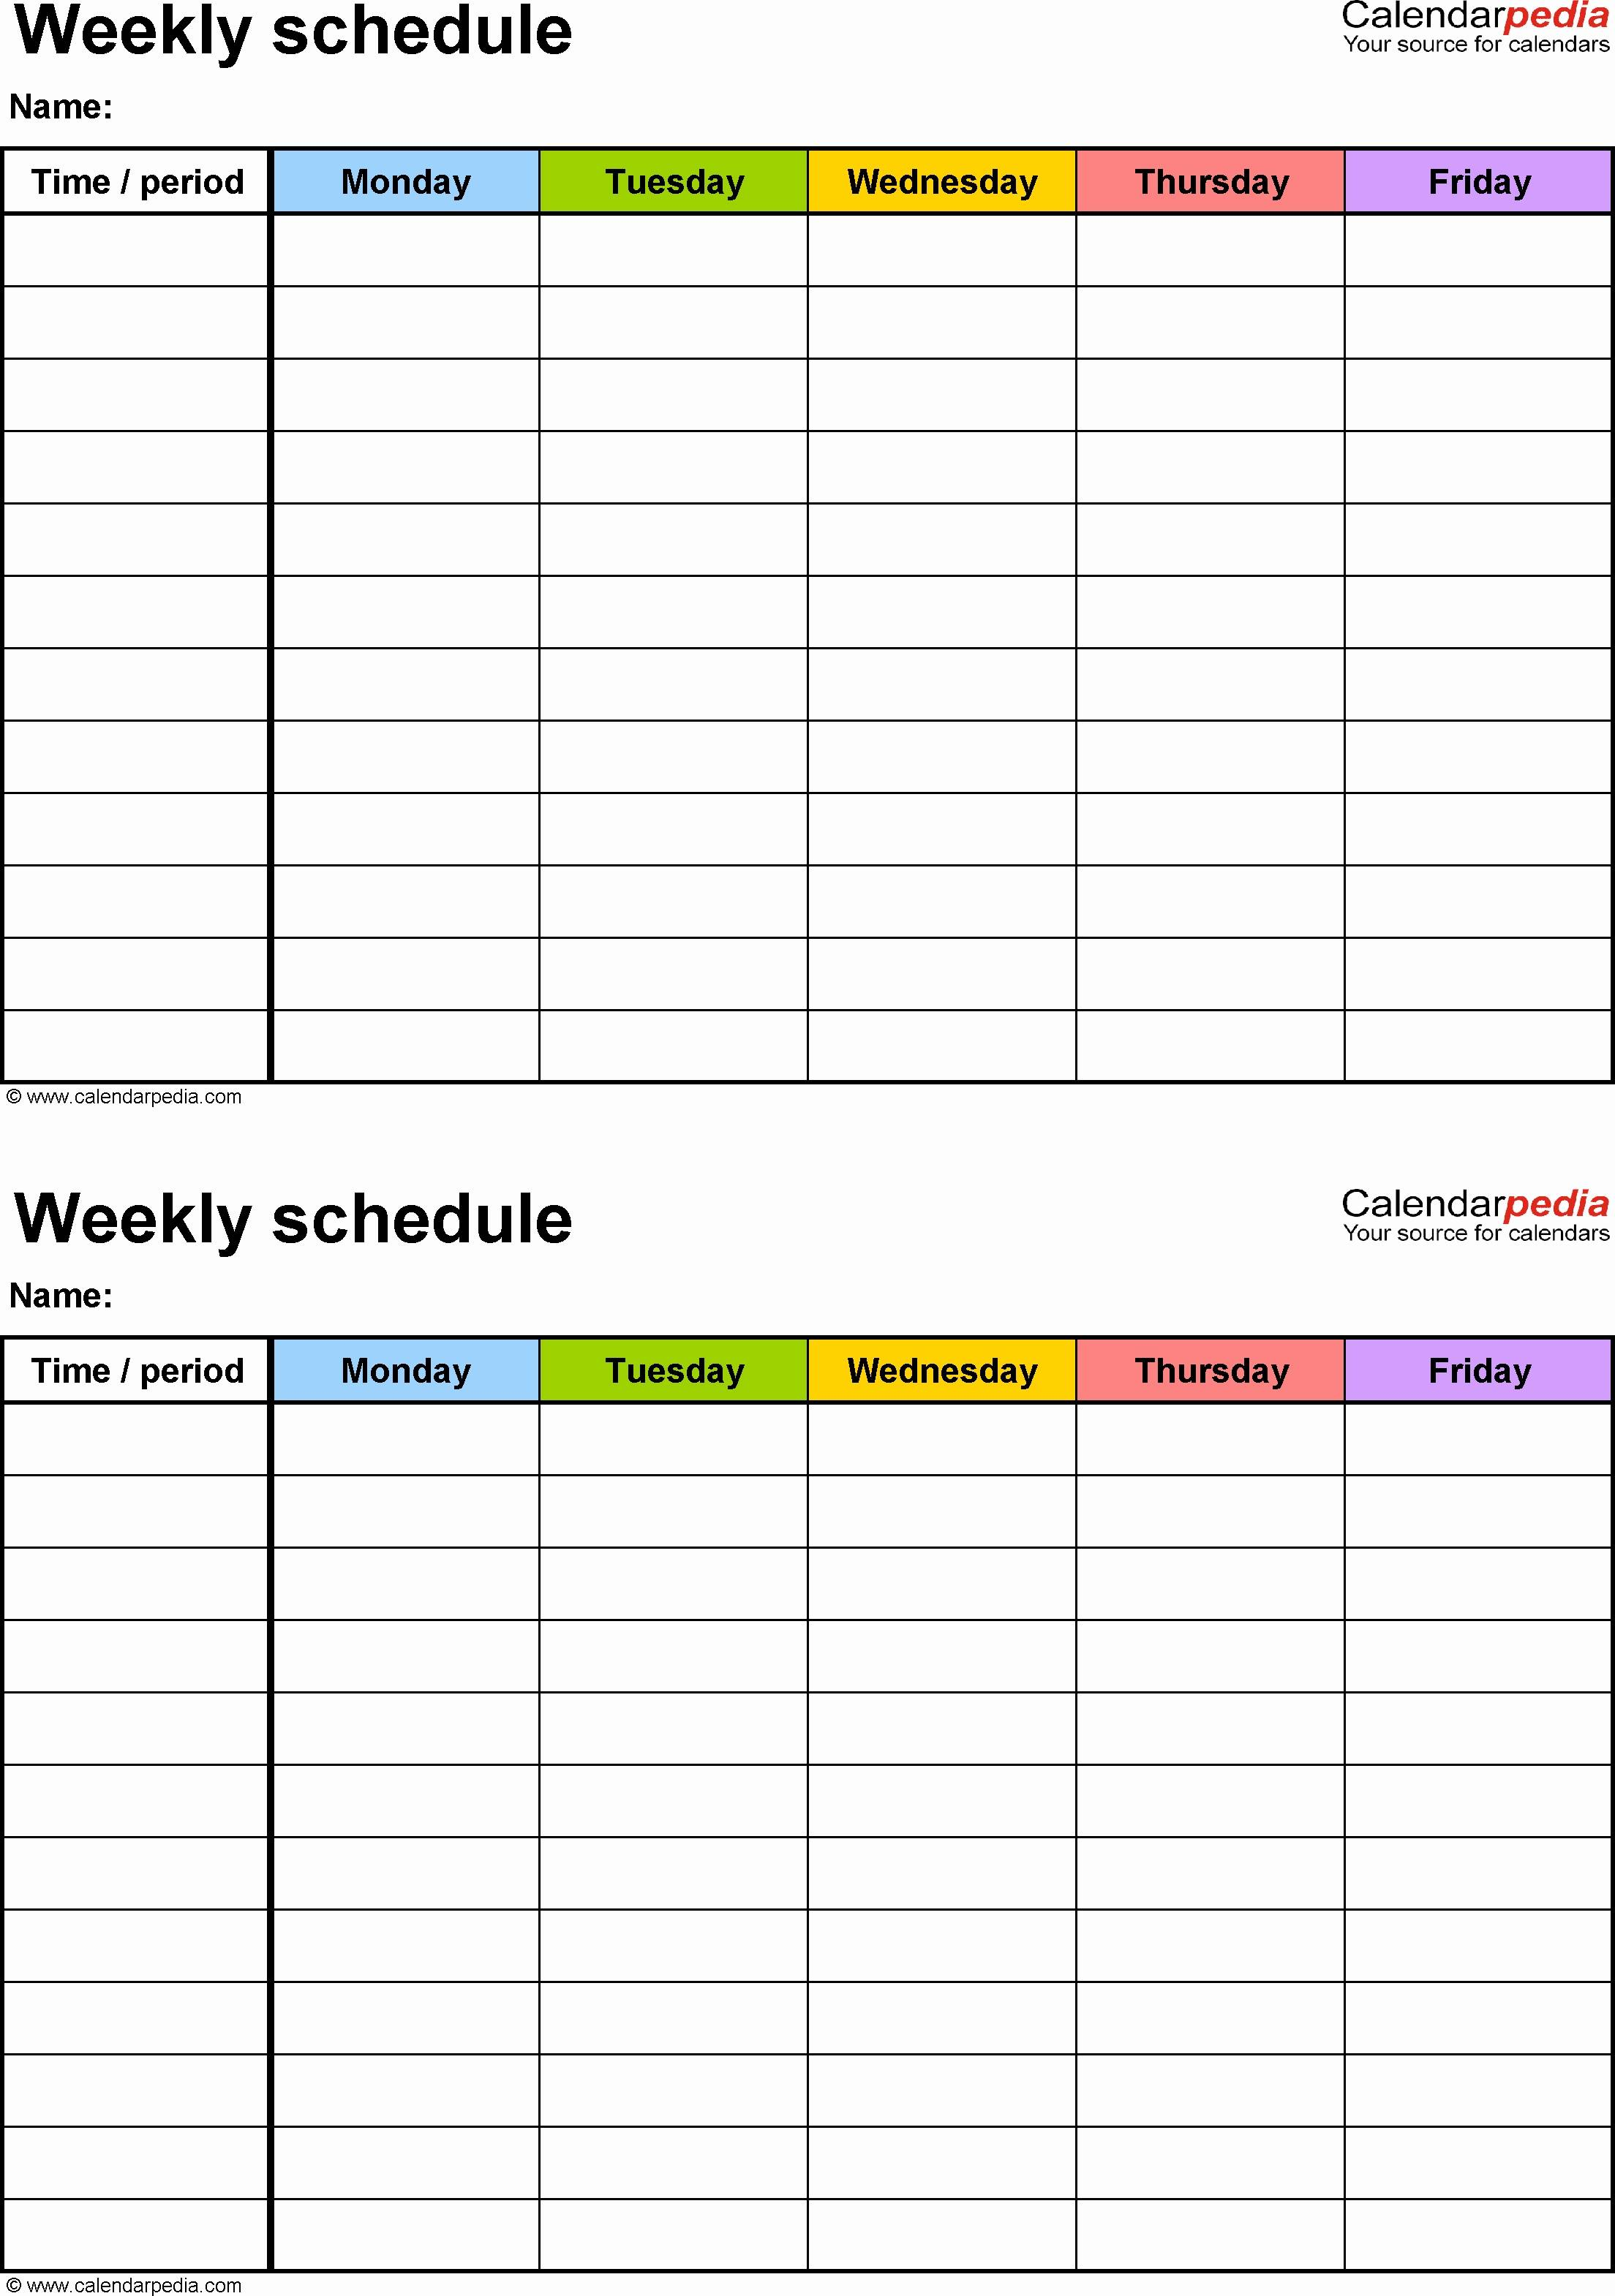 Schedule Maker Template Online